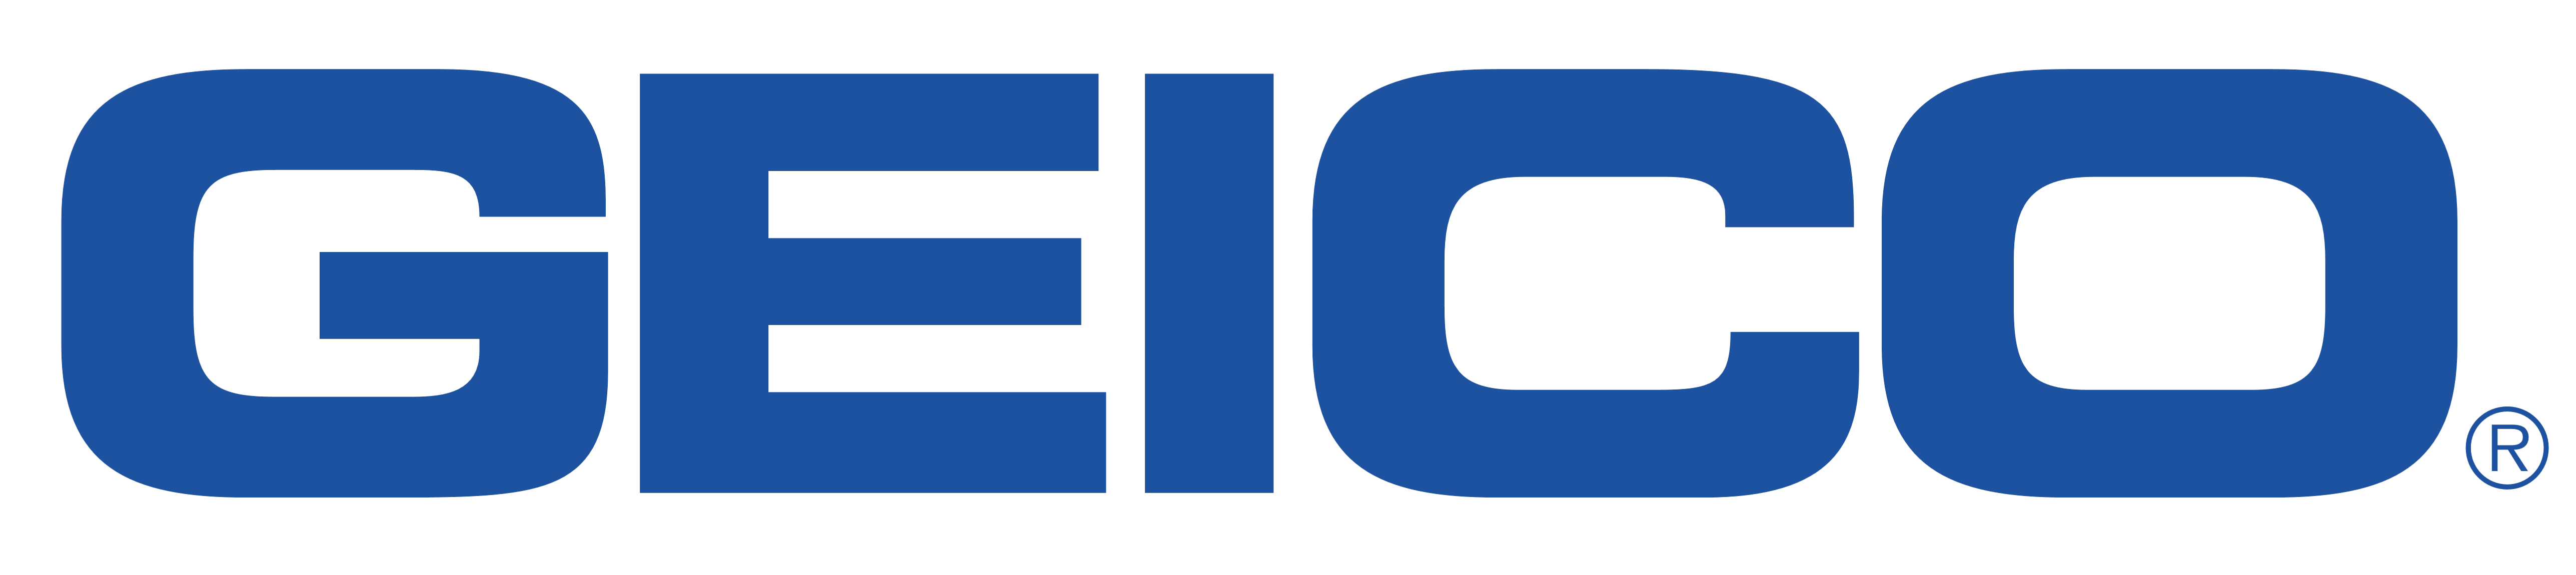 Geico Logo Wallpaper